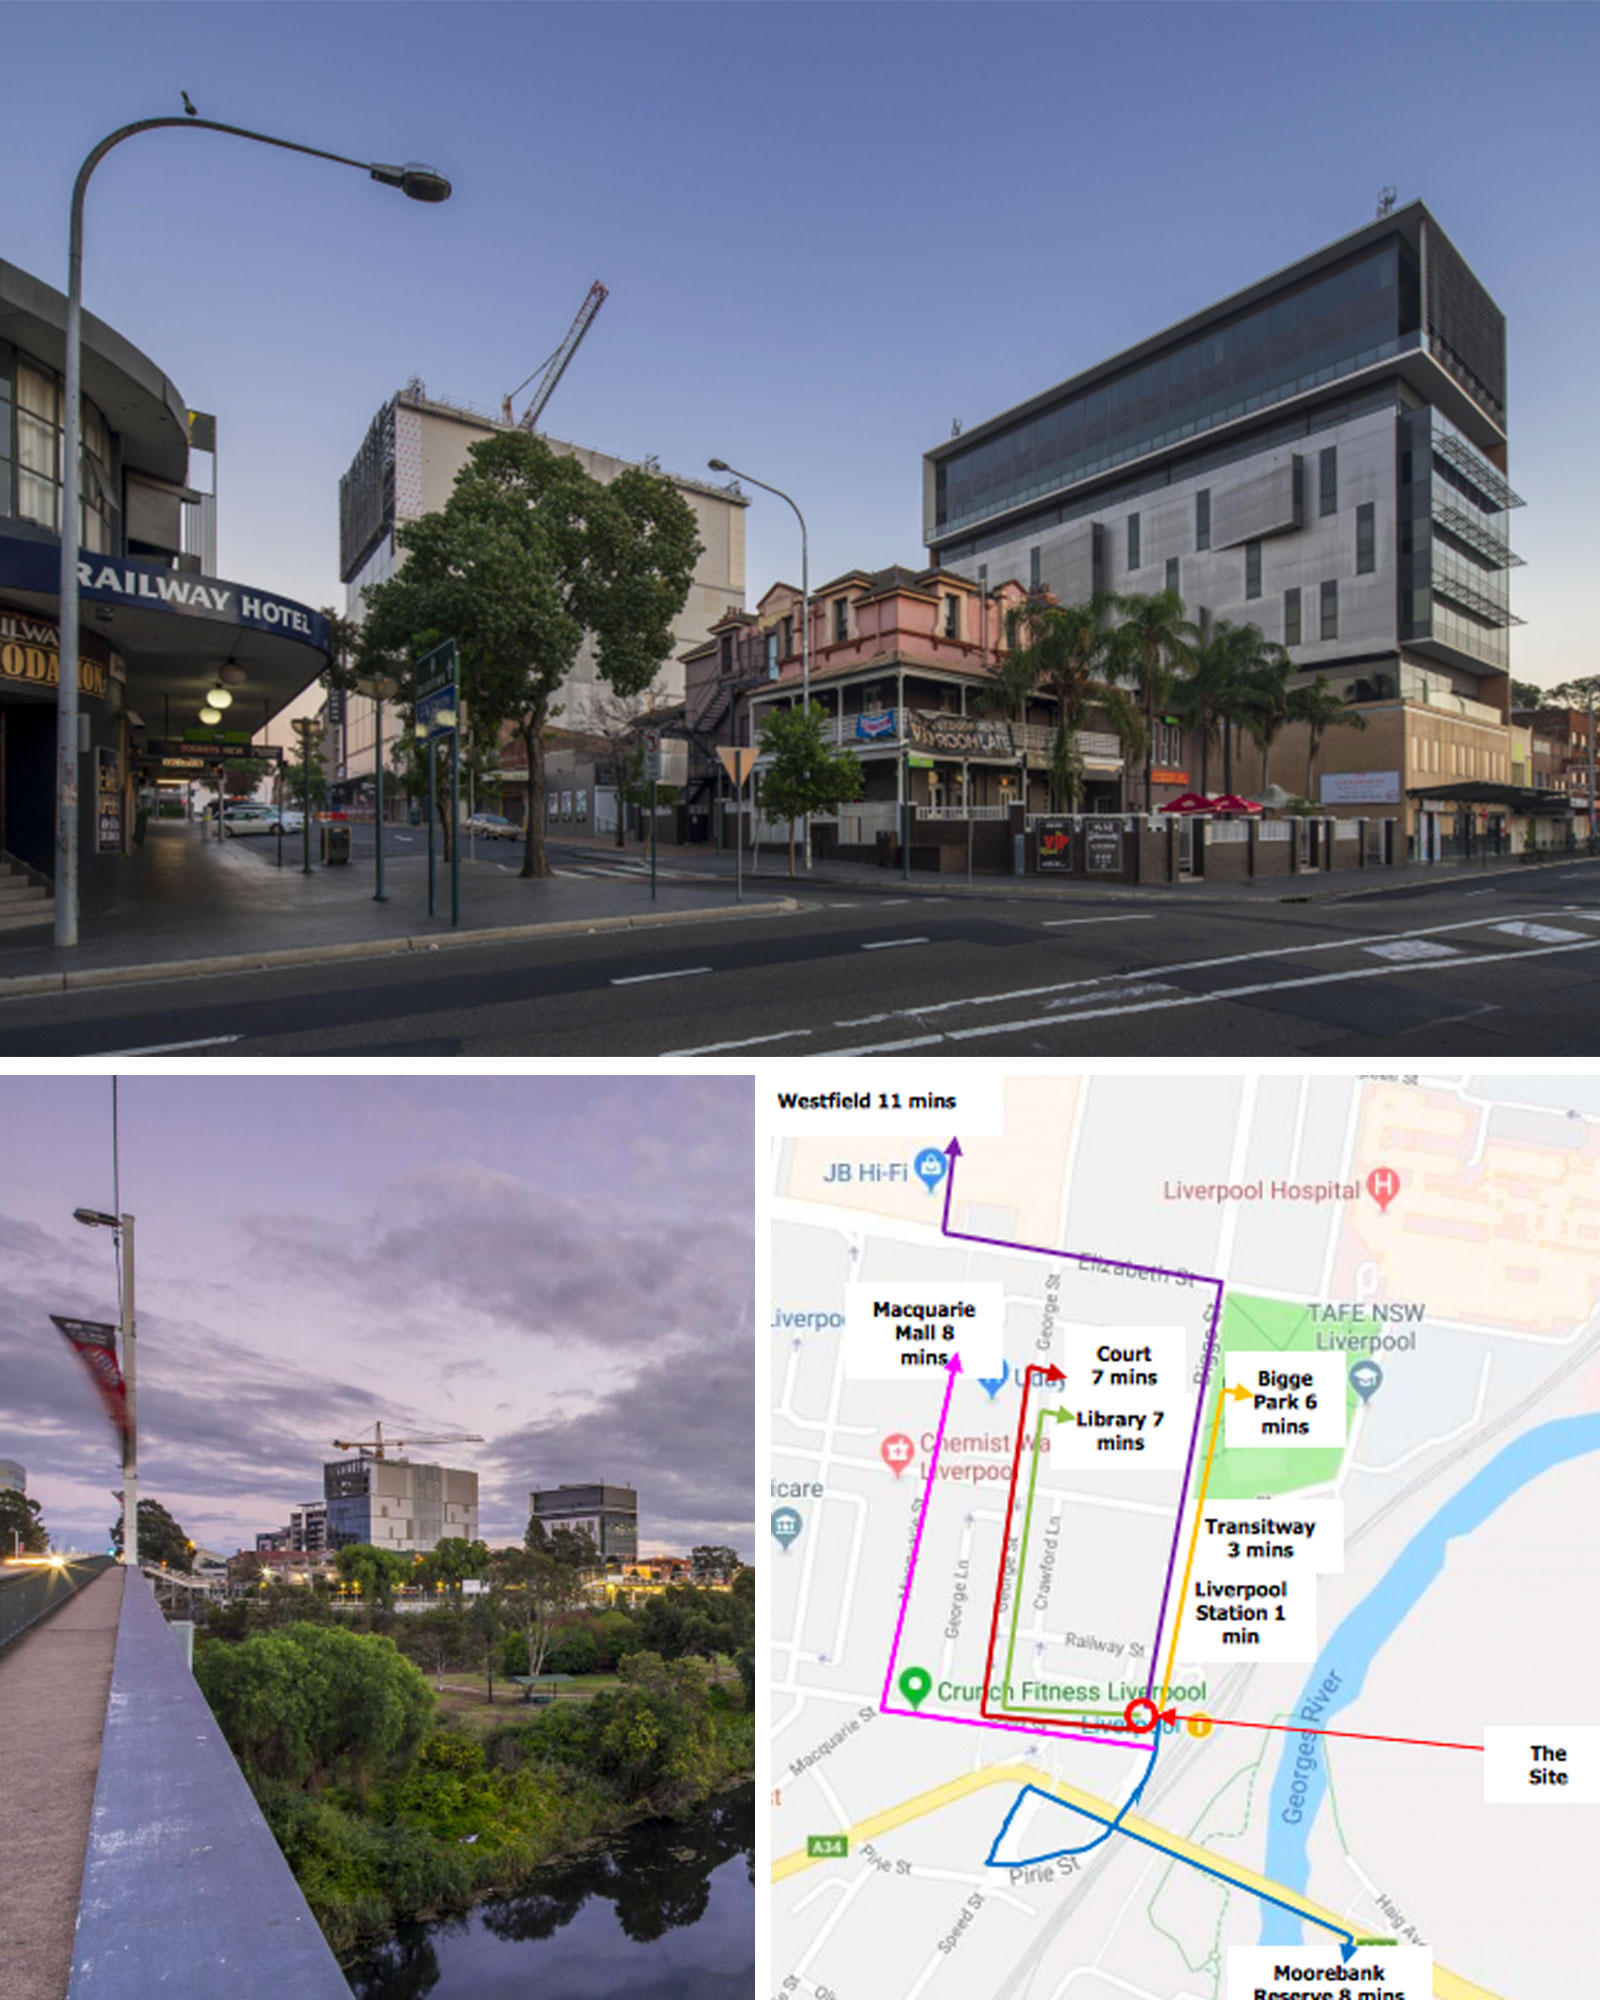 The Commercial Hotel as it stands (top), the view of the site from Newbridge Road (left) and a map of the walking catchment of the site (right).